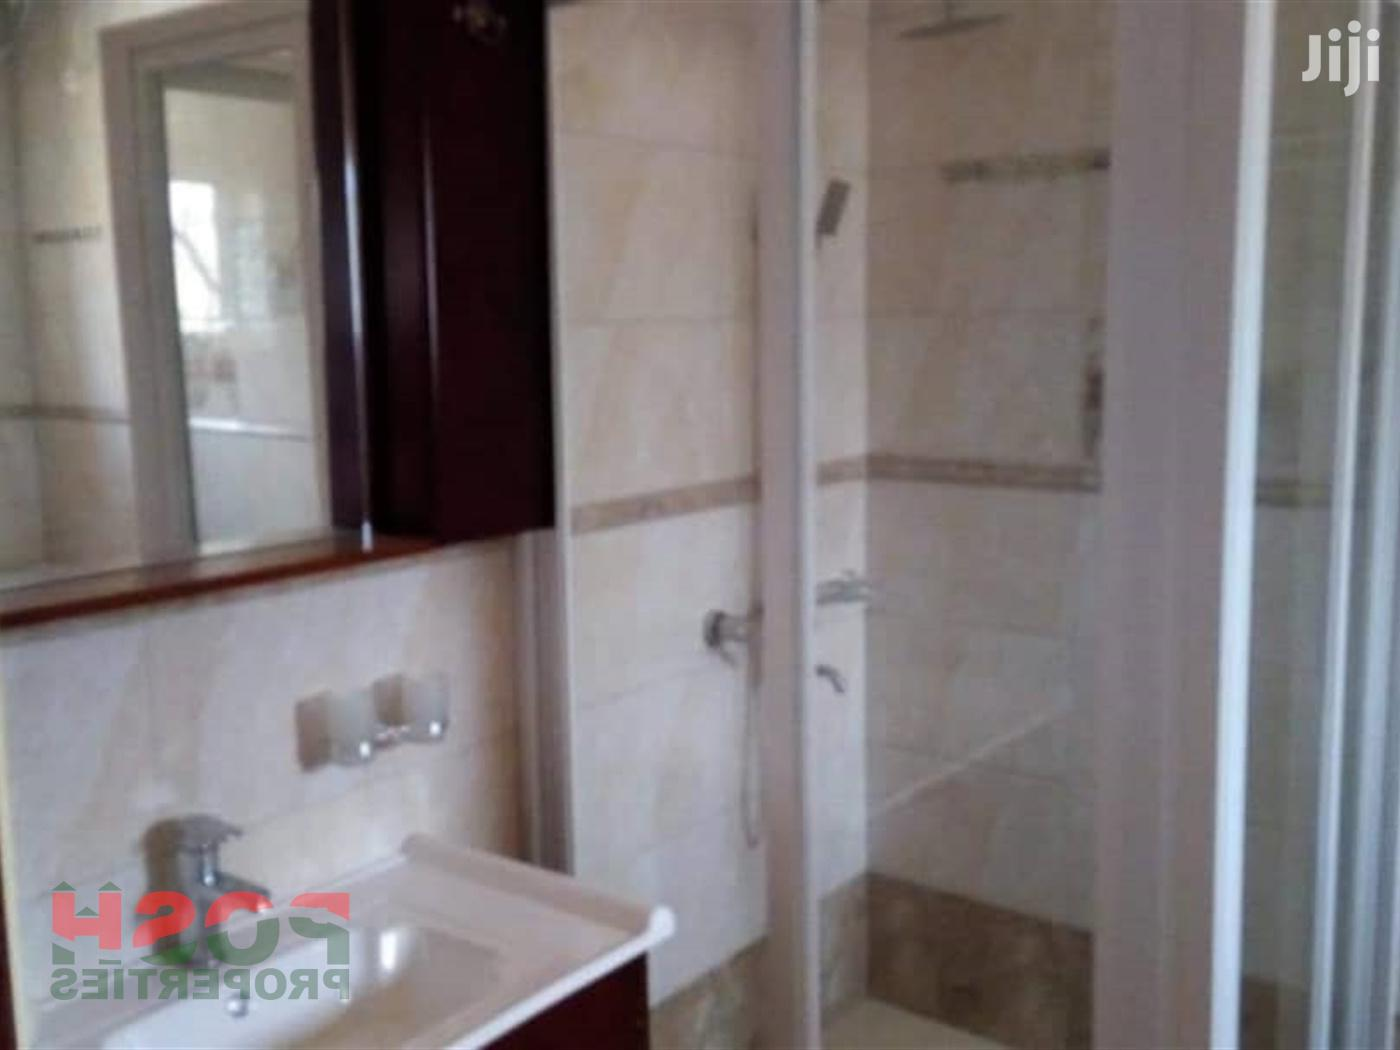 Ntinda New 3 Bedrooms Apartment for Rent | Houses & Apartments For Rent for sale in Kampala, Central Region, Uganda